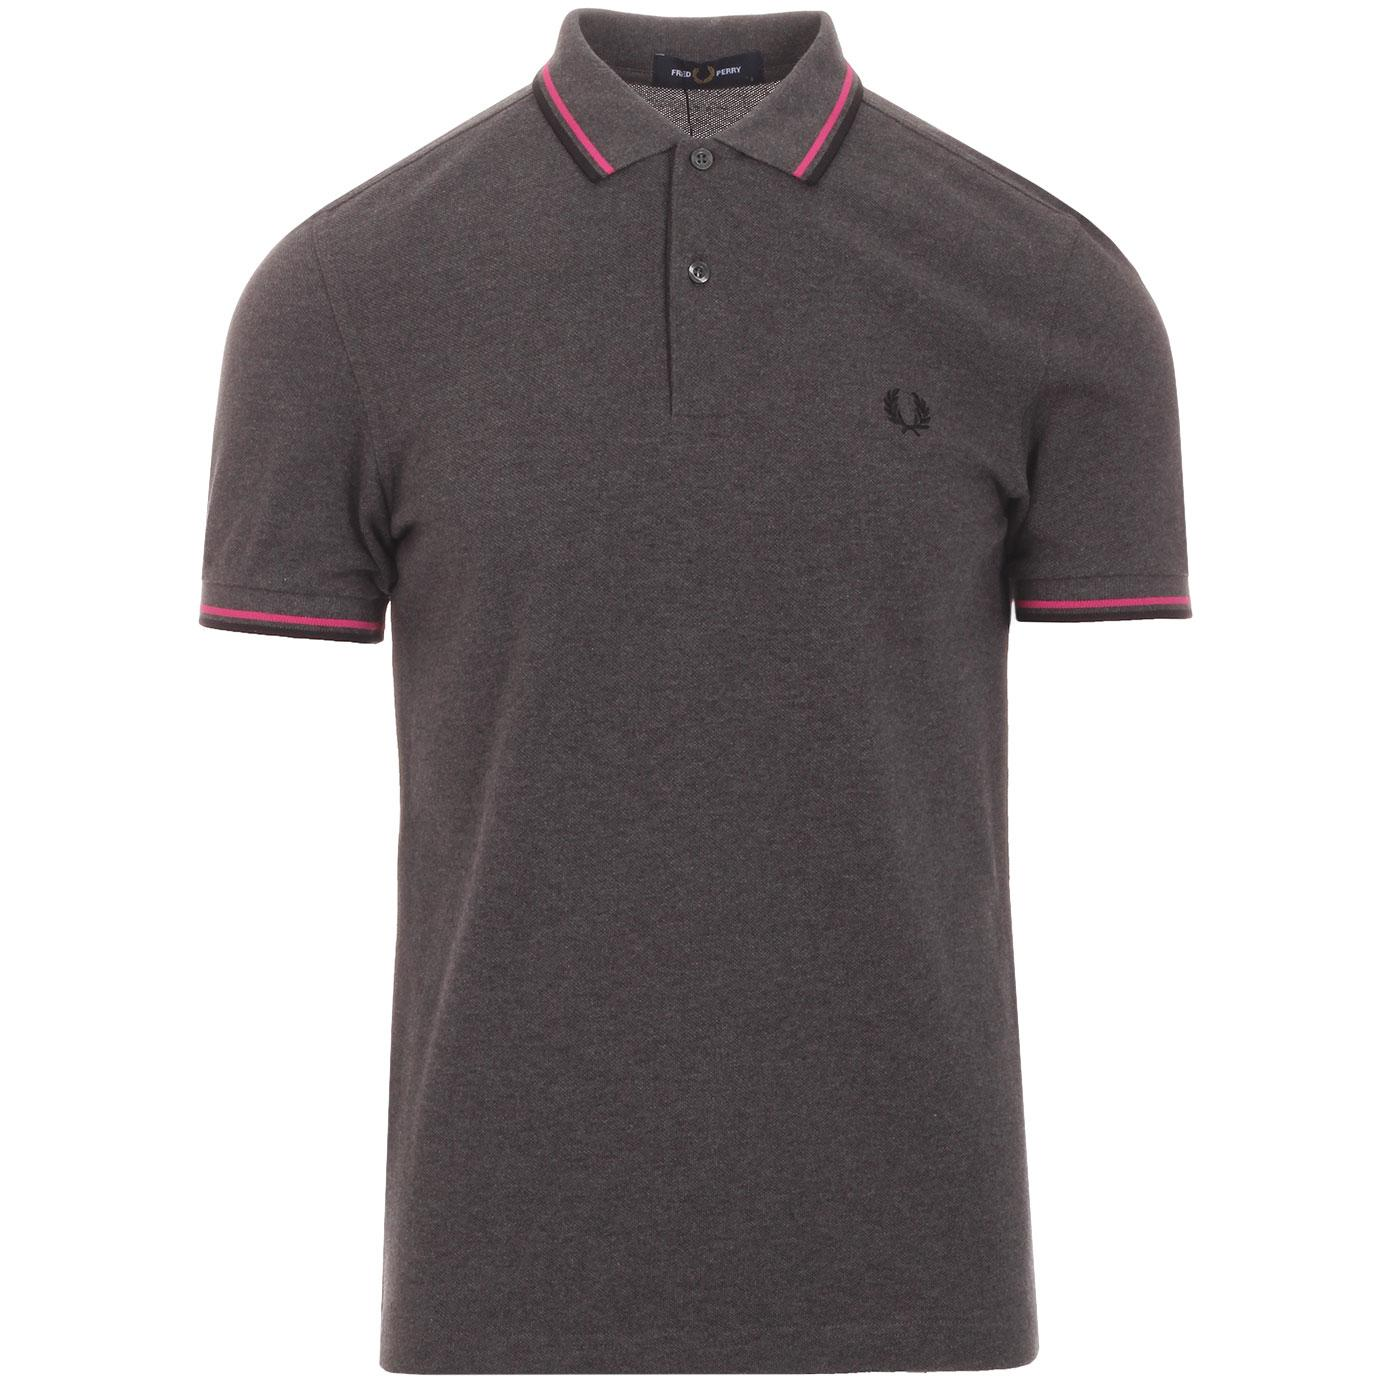 FRED PERRY M3600 Twin Tipped Mod Polo GRAPHITE